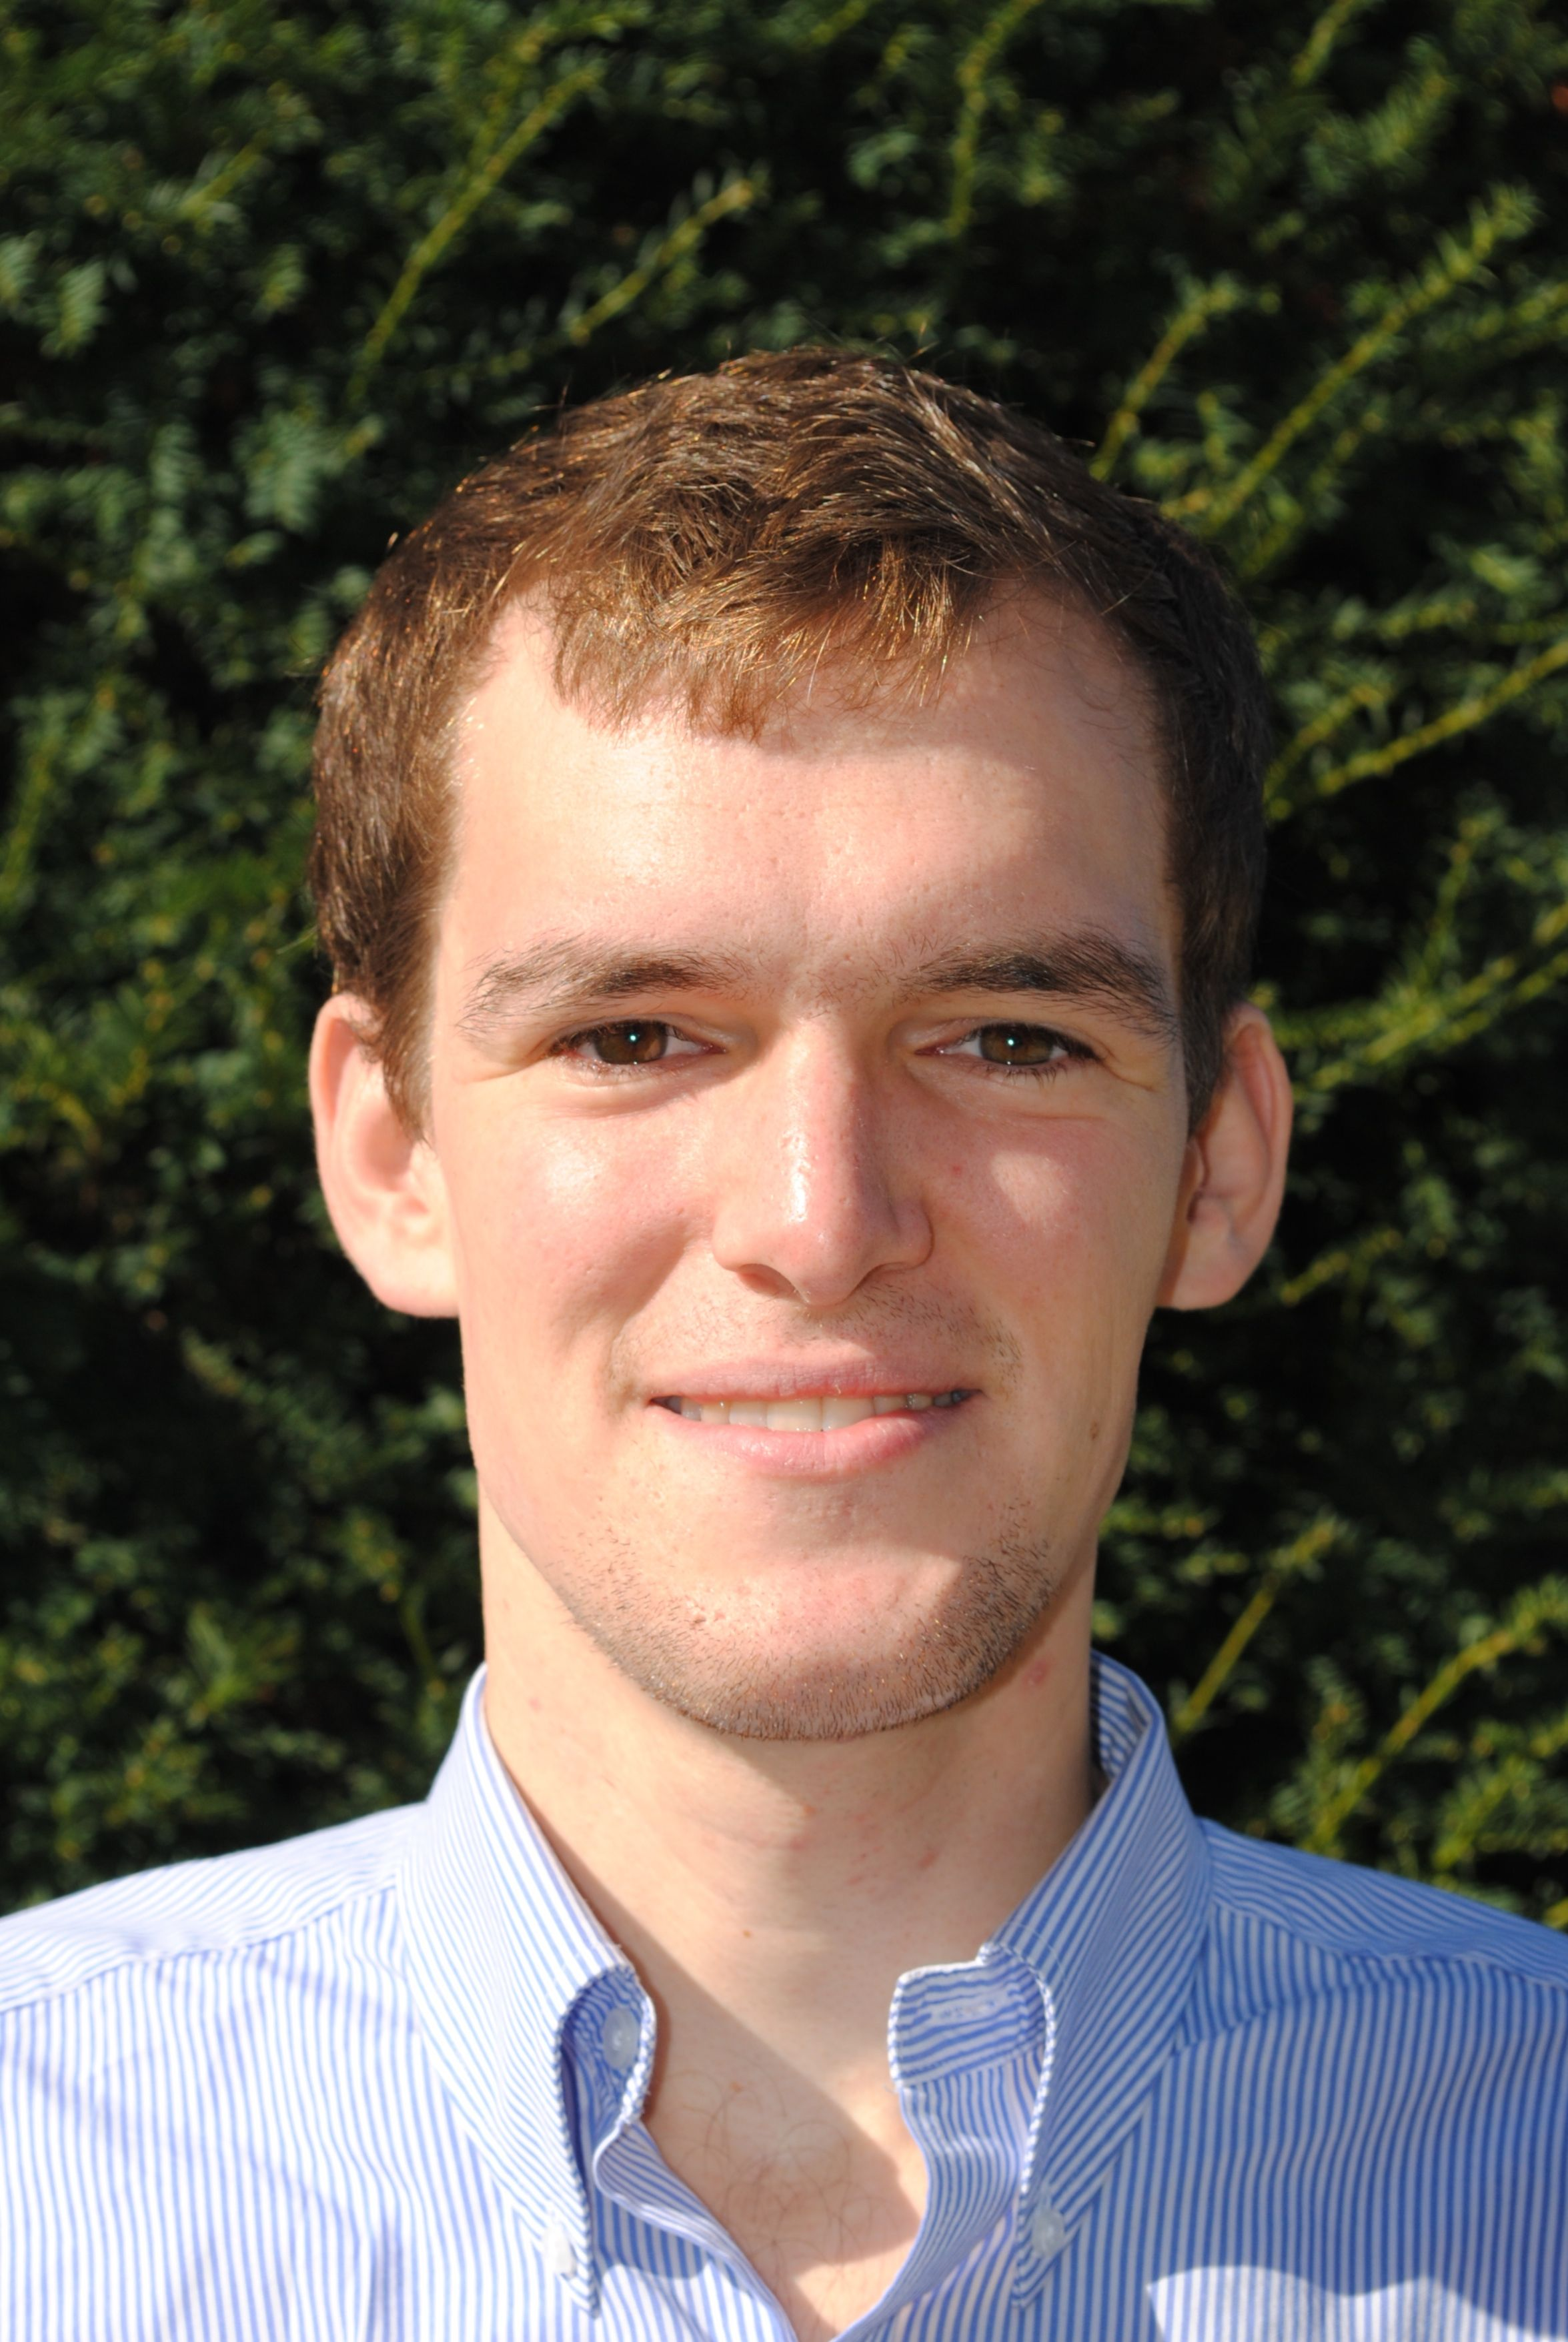 Cedric Josz - Efficient Computational Methods for Large-Scale Systems with Applications to Power Systems and Machine Learning